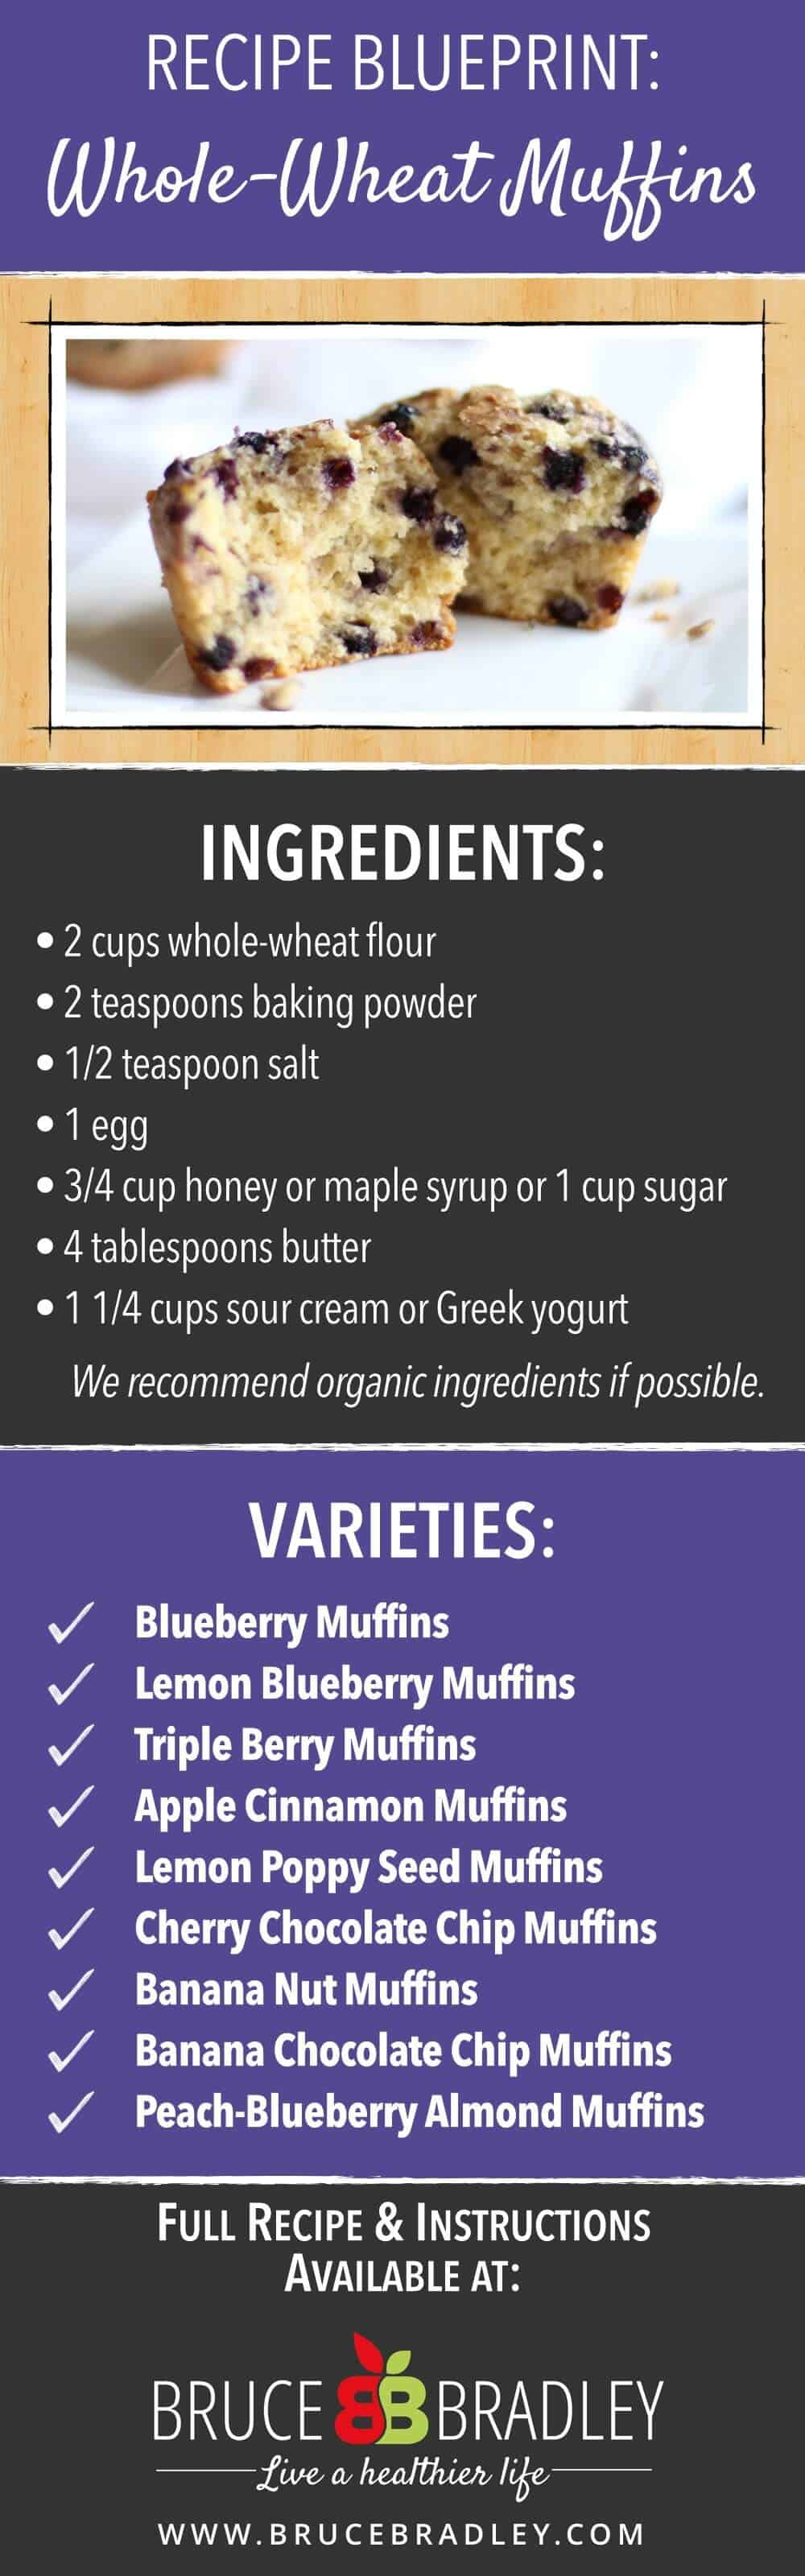 Bruce Bradley's Whole-Wheat Muffin recipe blueprint is the perfect base for all your favorite kinds of muffins and uses real ingredients!